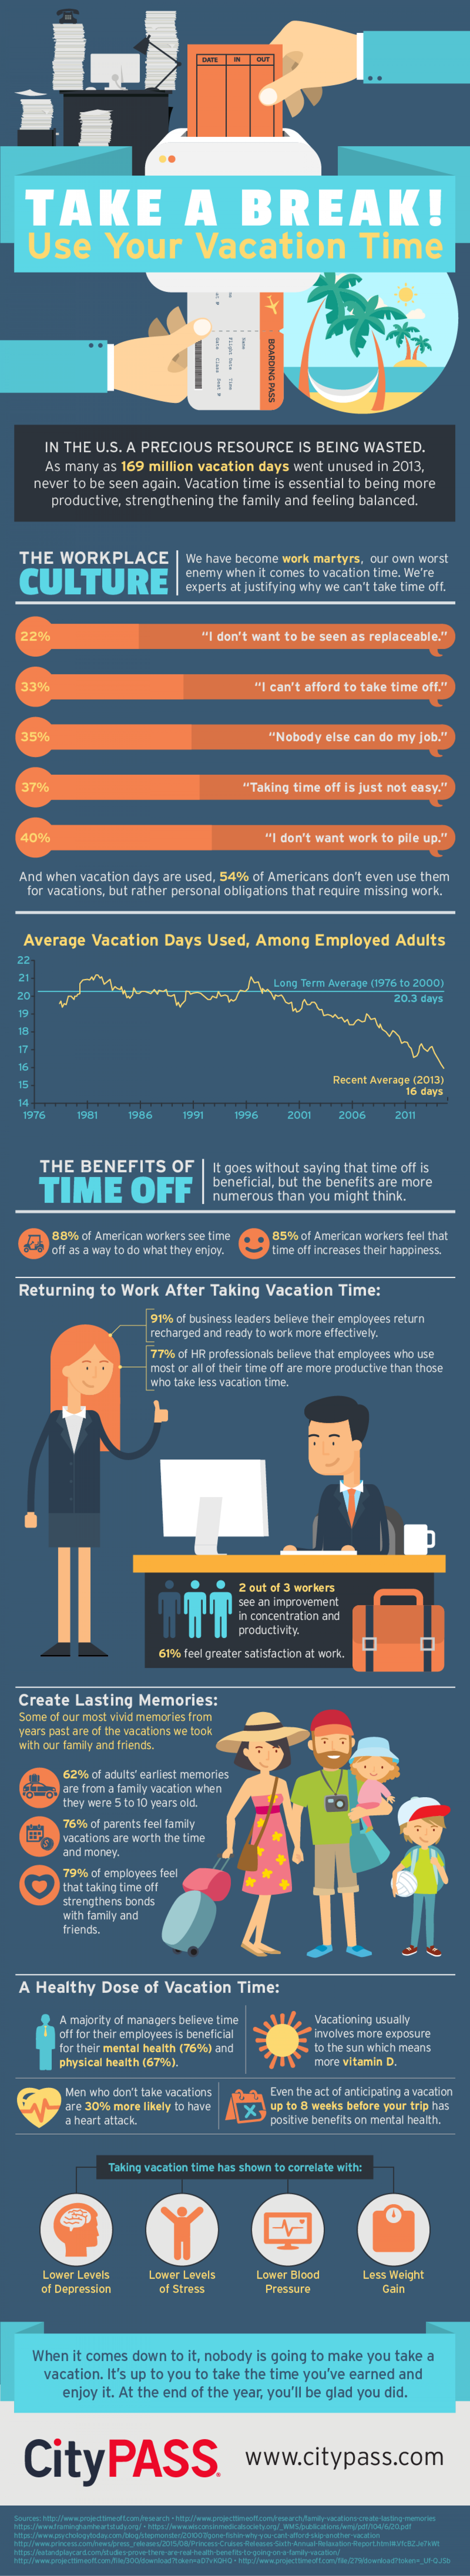 Take a Break! Use Your Vacation Time Infographic